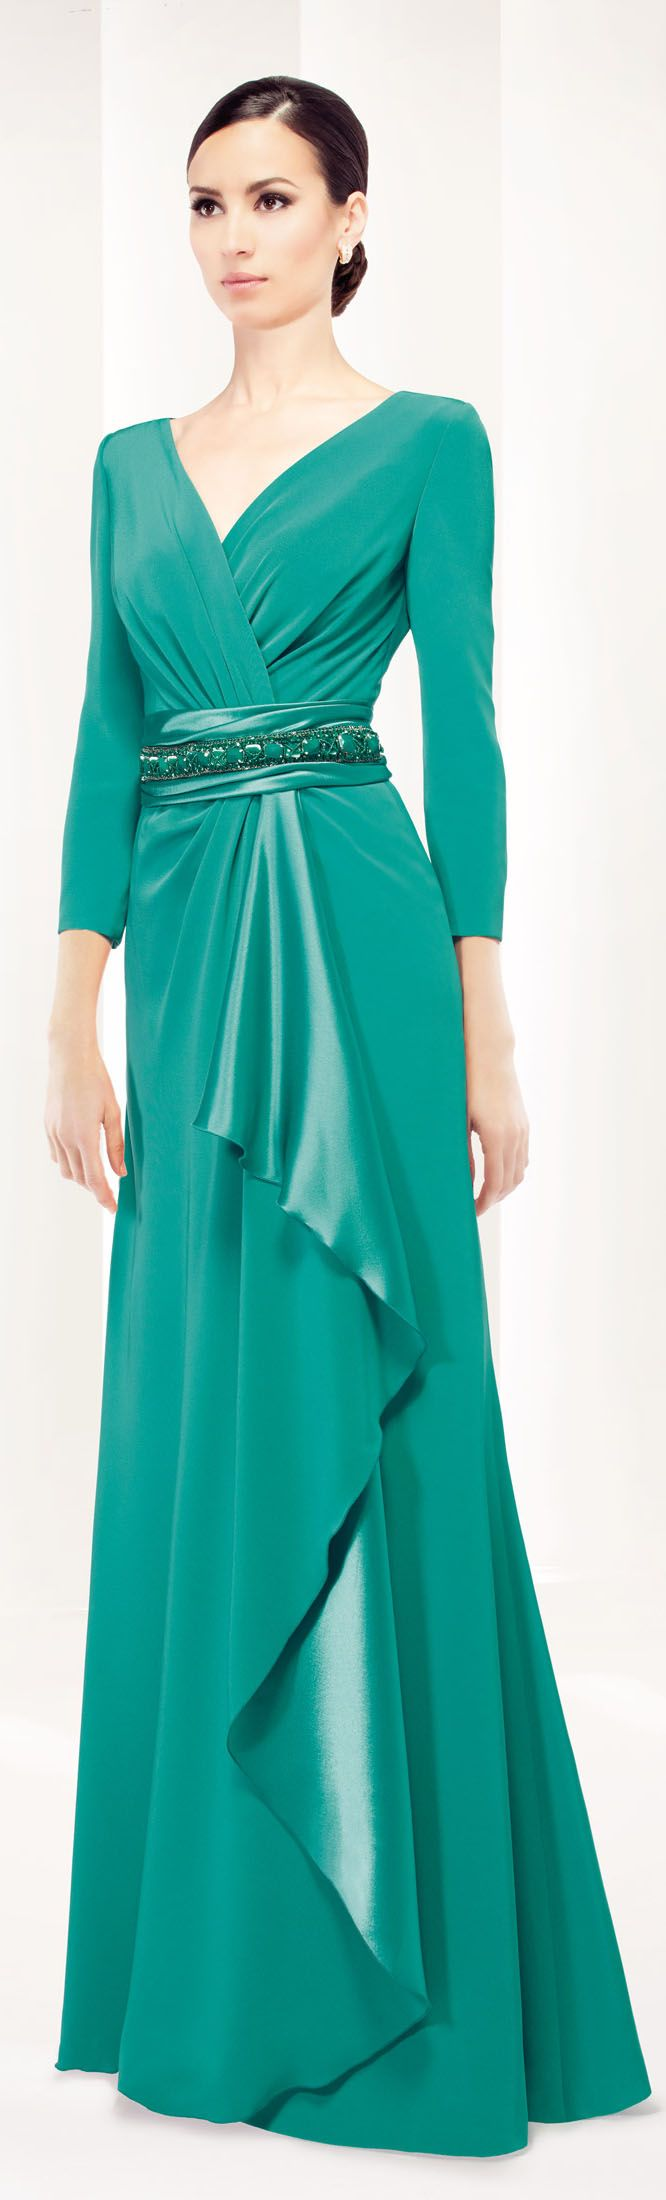 The Patricia Avendano Party Dresses 2015 Collection   Gorgeous Green ...